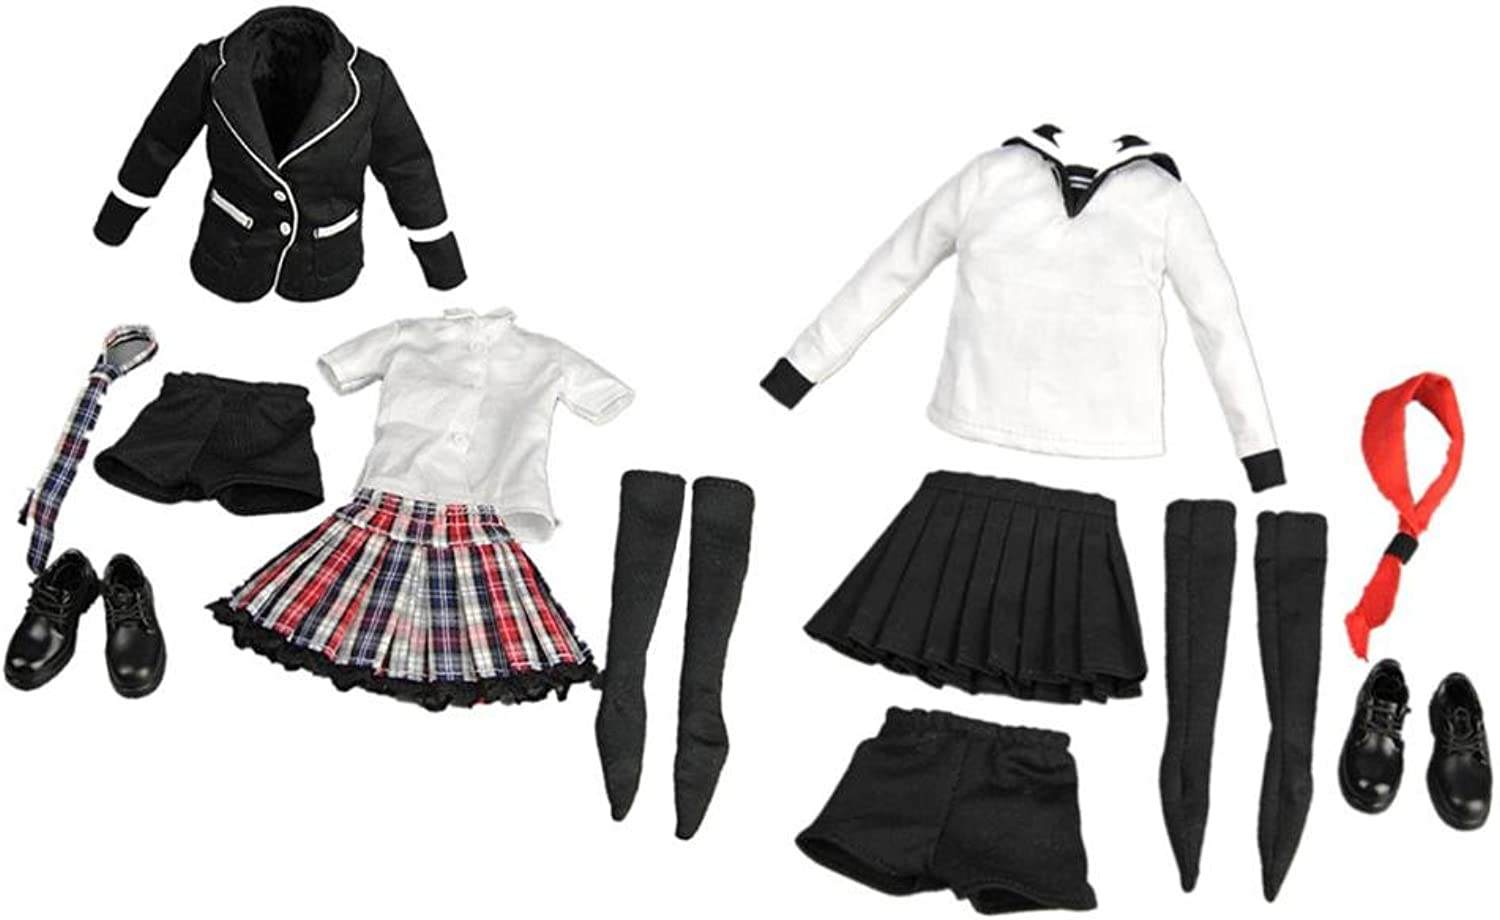 MagiDeal 2 Sets 1 6 Scale Women Female Clothes School Uniform for 12'' Action Figures Accessories